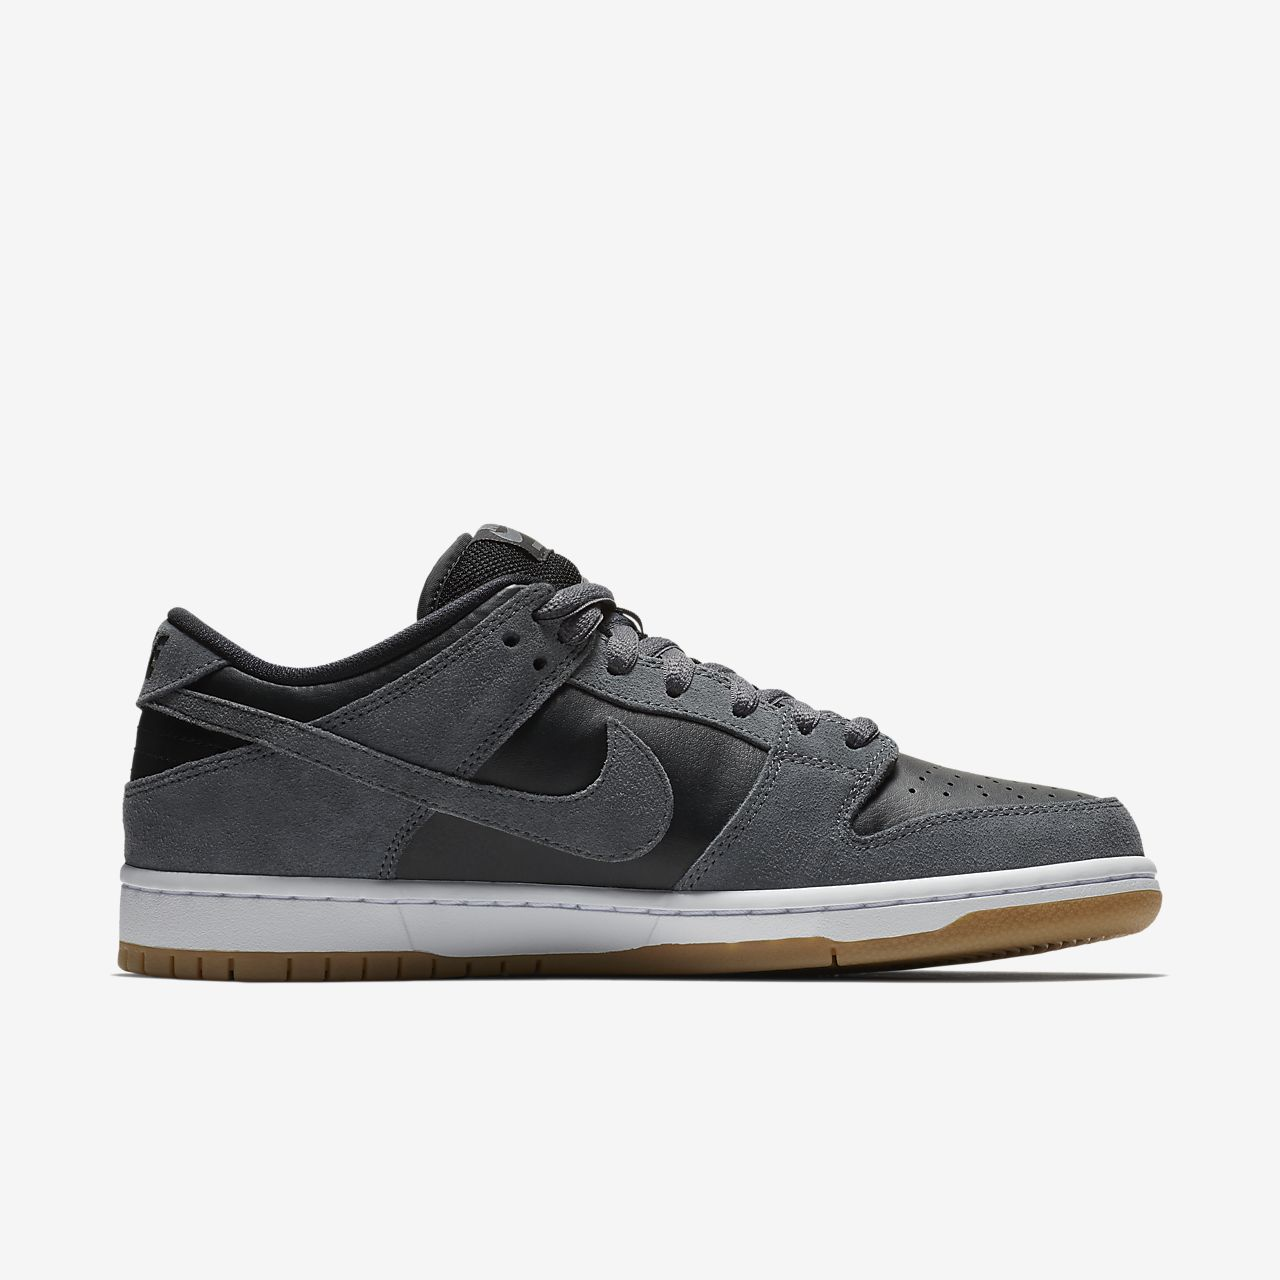 official photos cc71b 12281 Nike SB Dunk Low TRD Men's Skateboarding Shoe